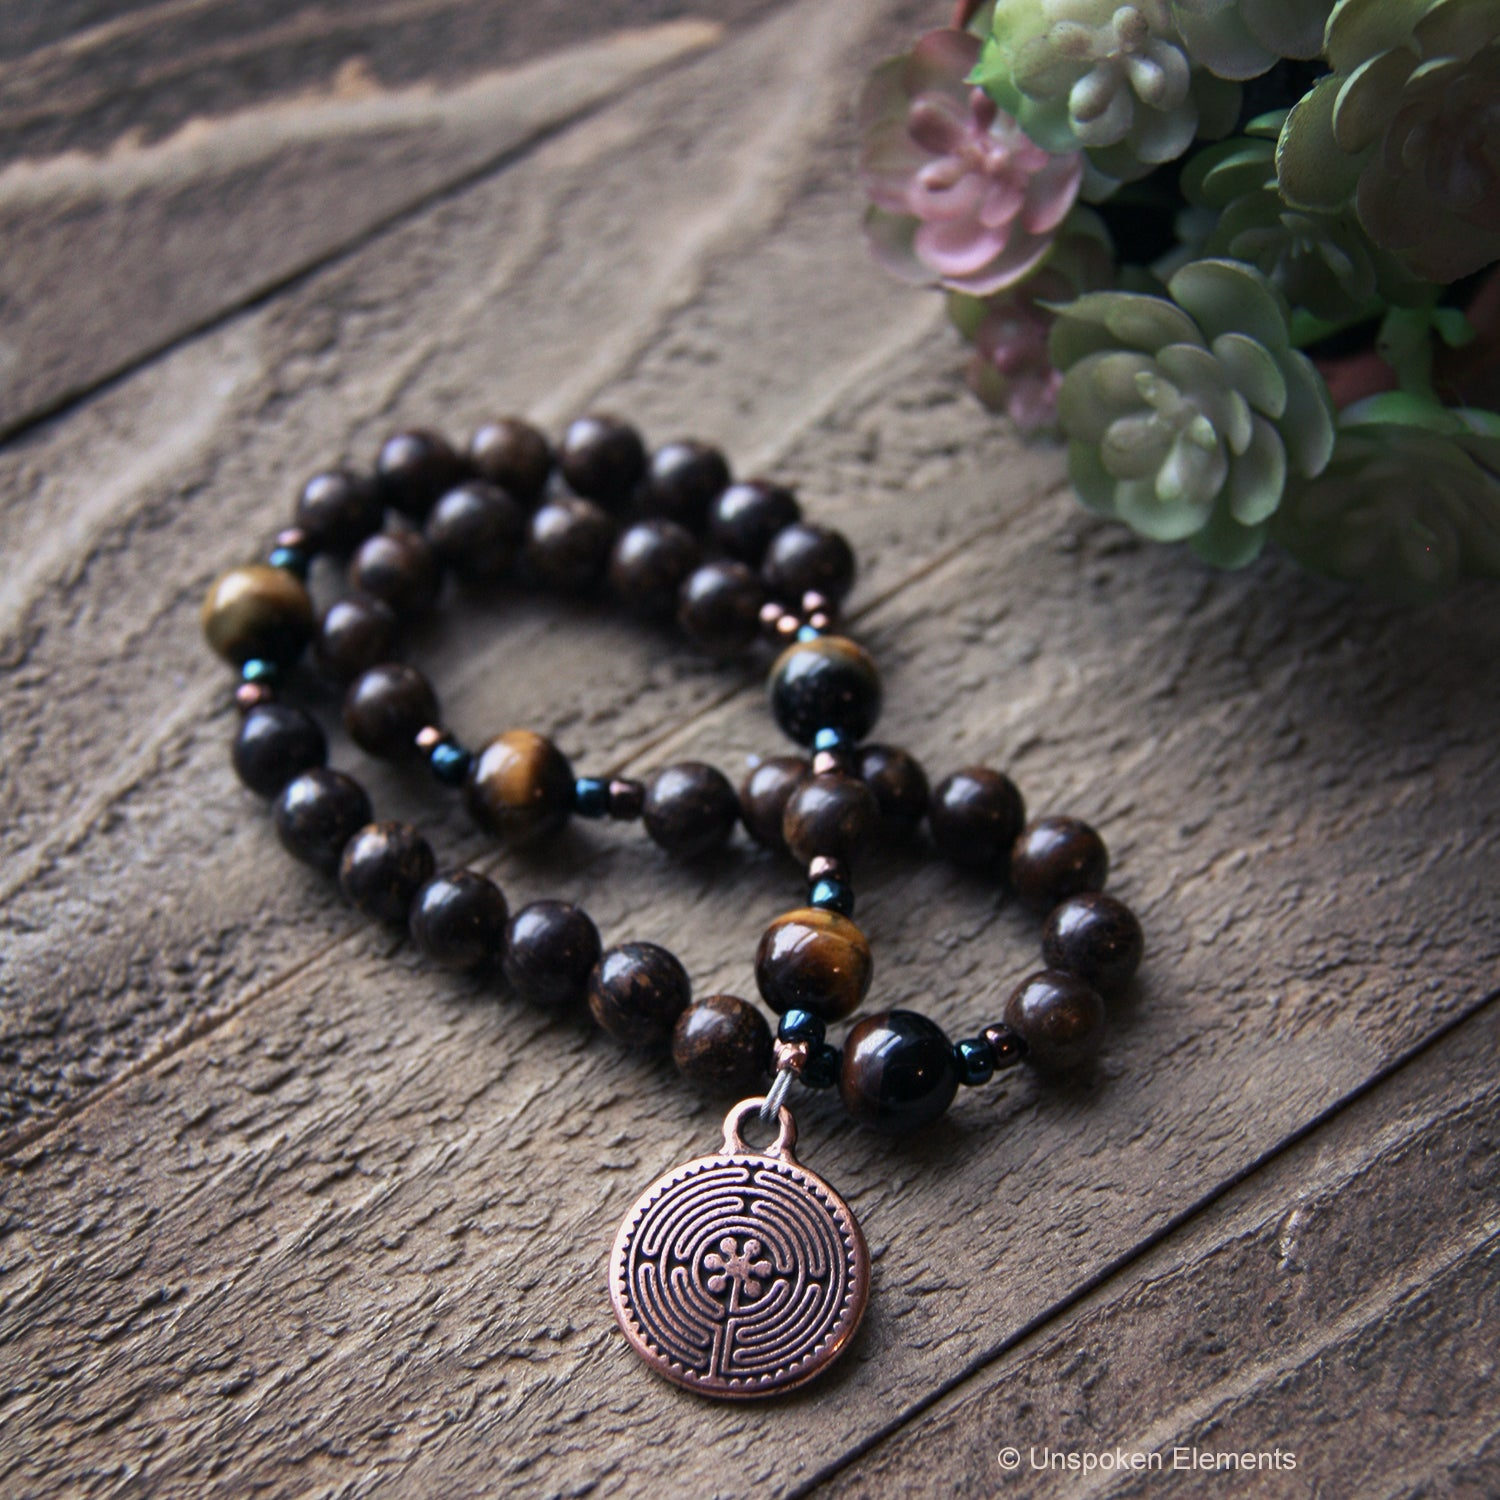 Labyrinth Anglican Prayer Beads by Unspoken Elements